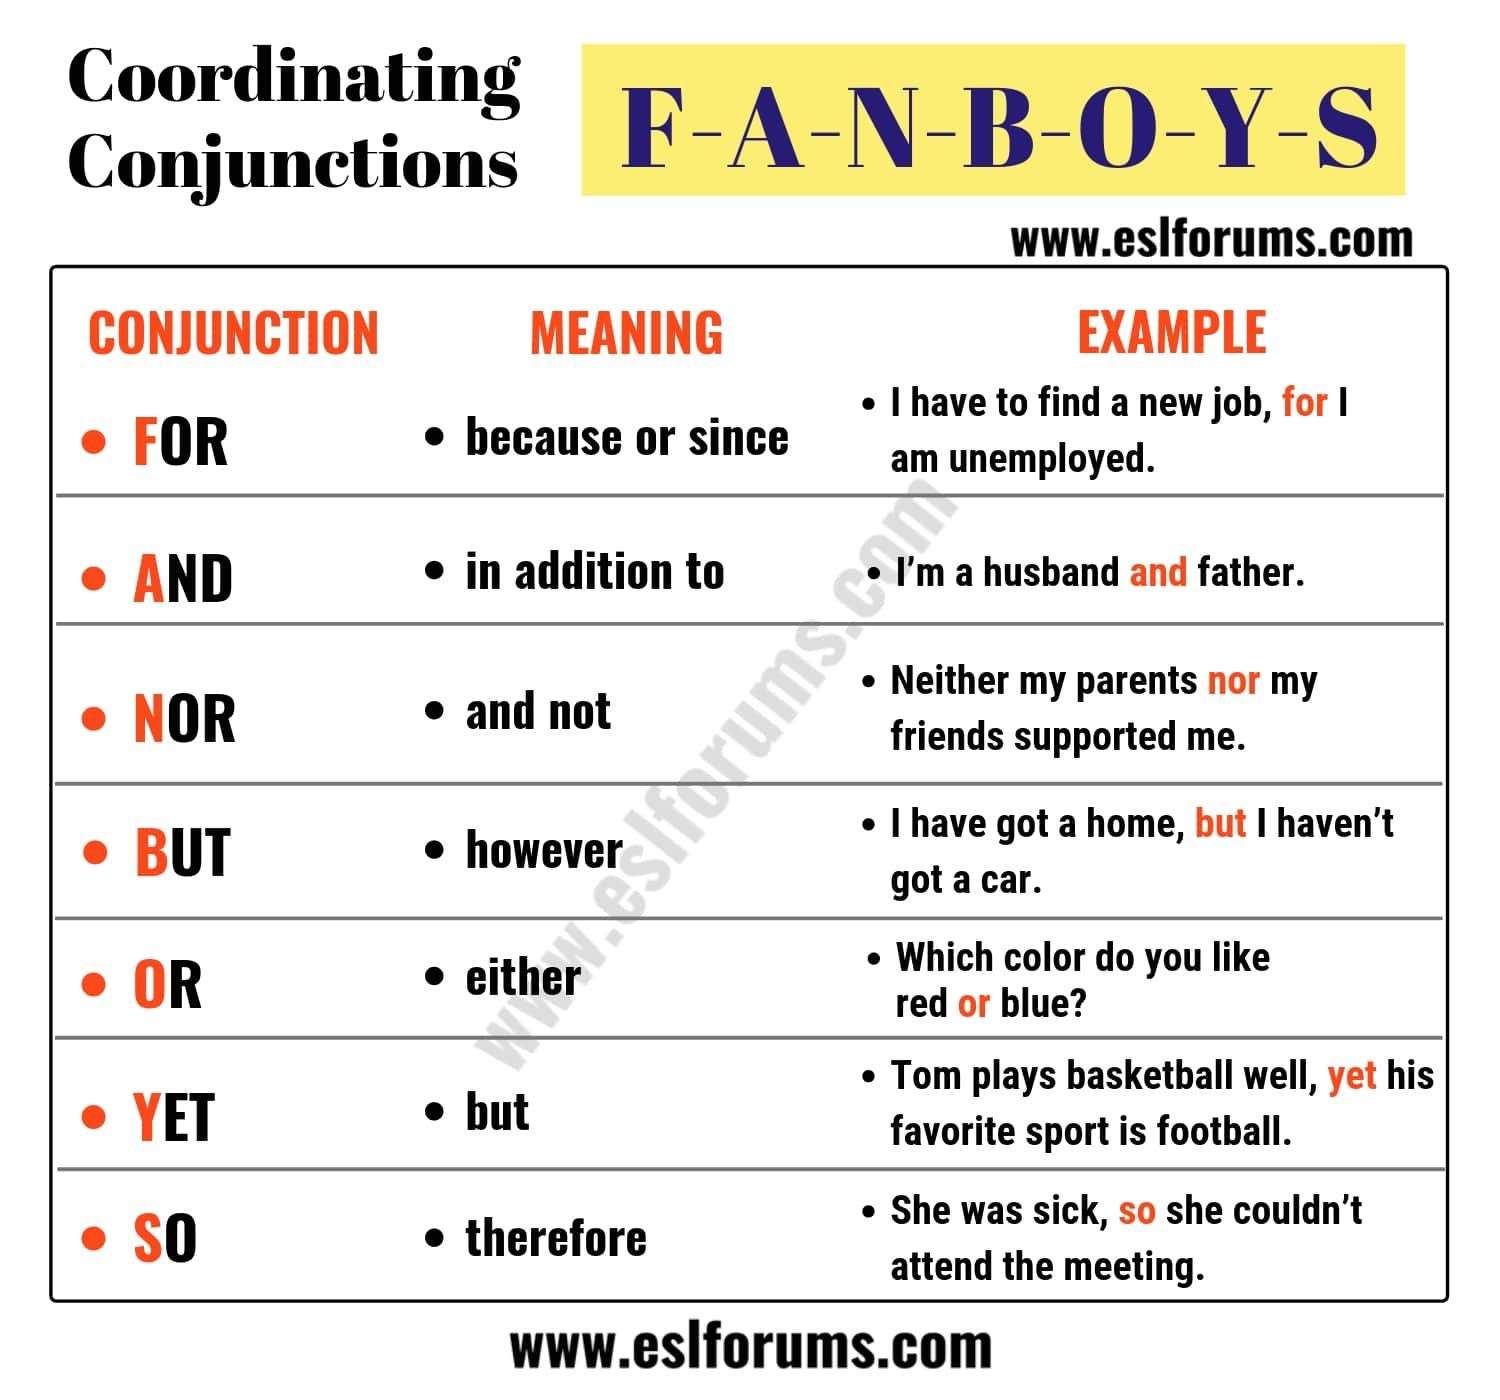 medium resolution of FANBOYS: 7 Important Coordinating Conjunctions - ESL Forums   English  vocabulary words